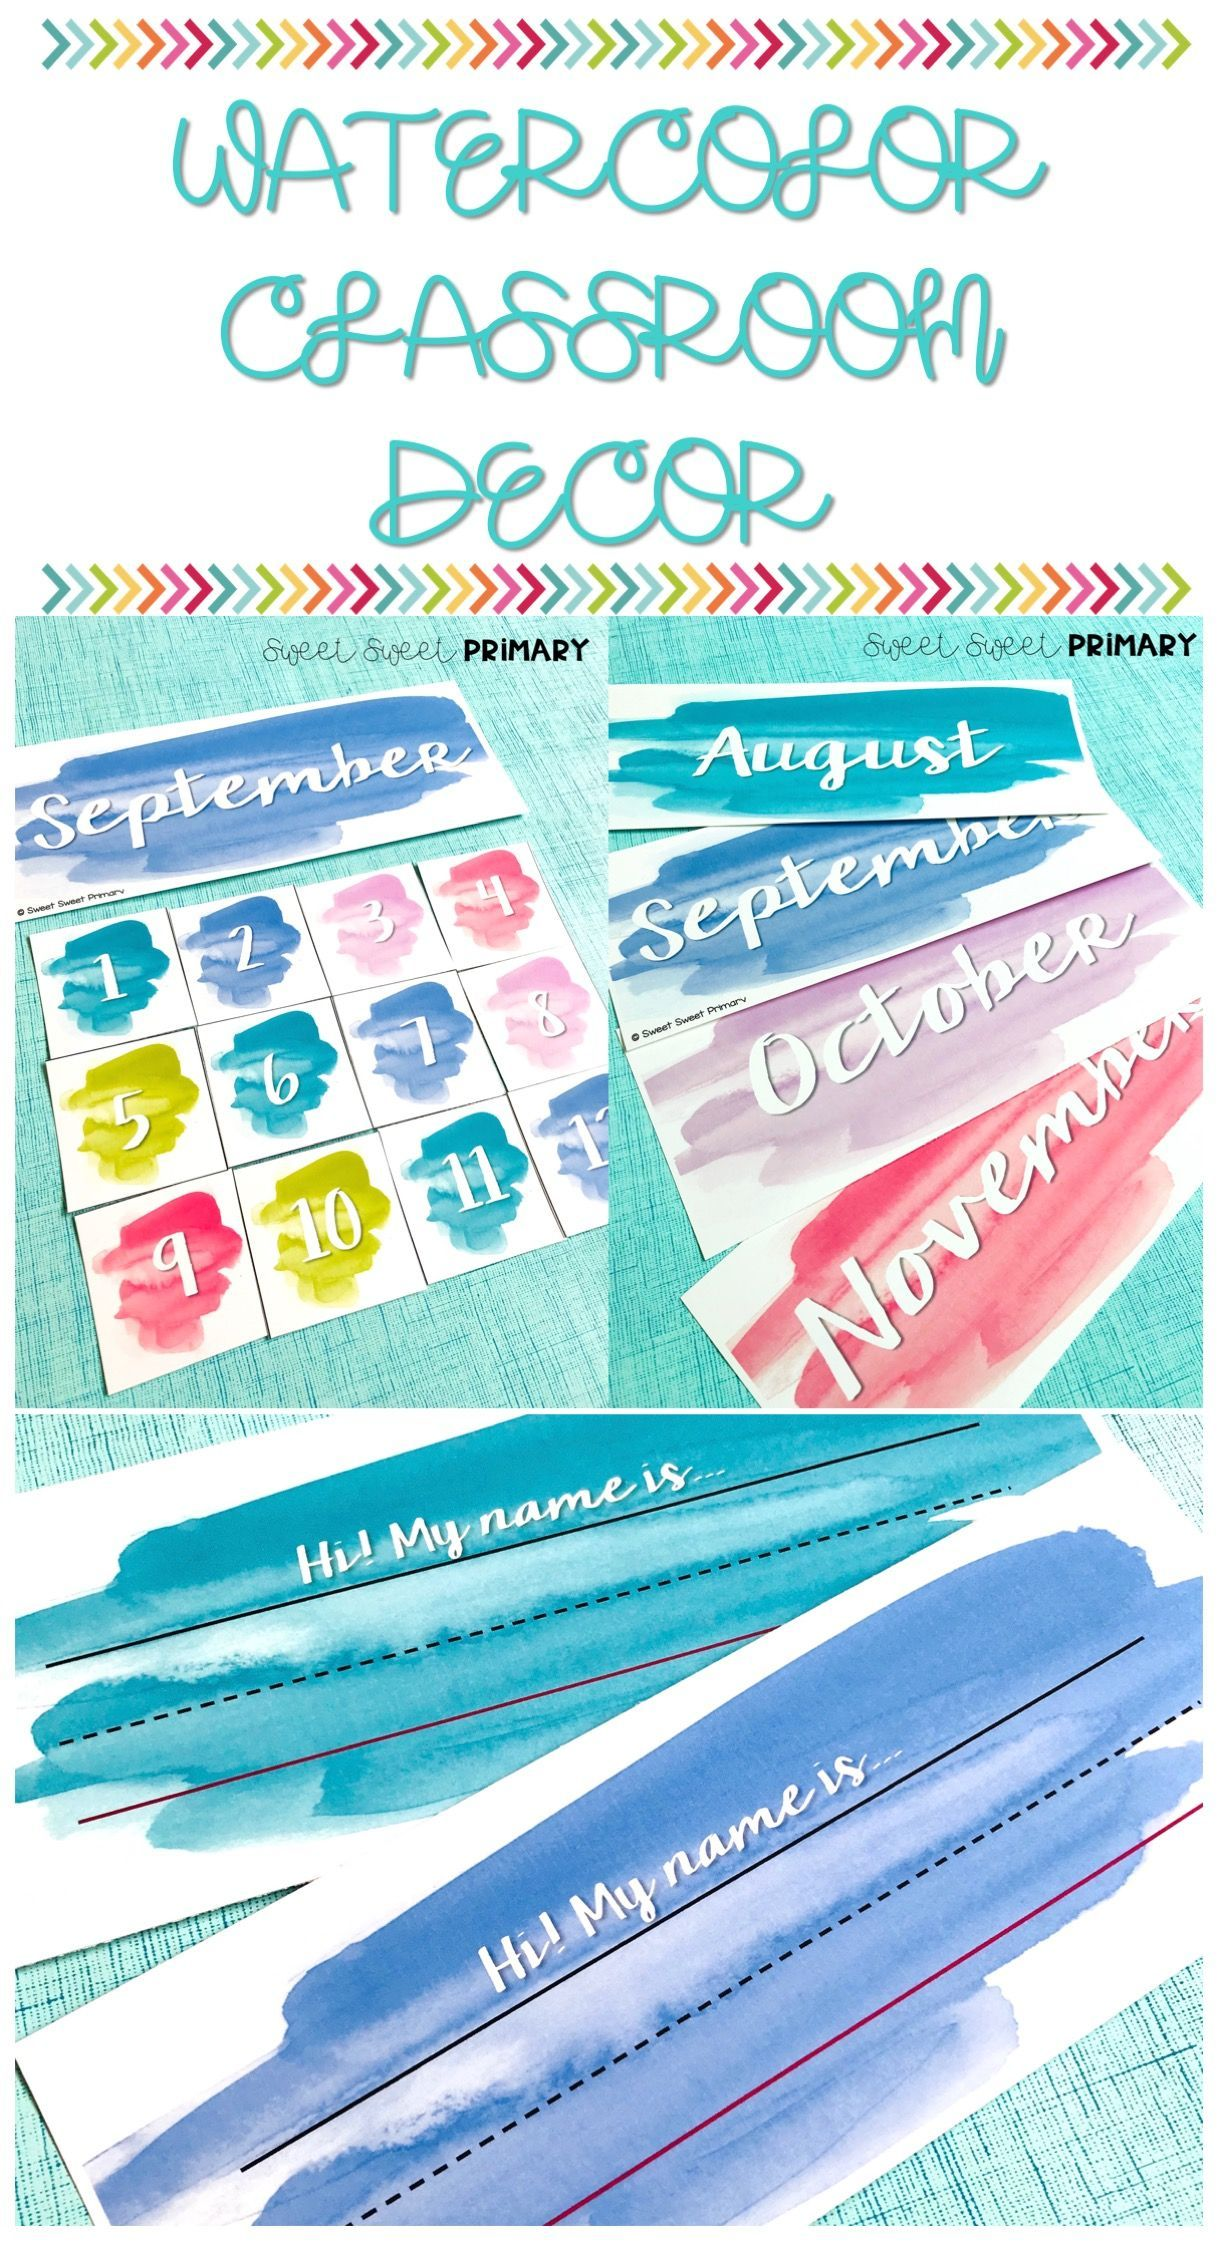 Watercolor Classroom Decor Calendar And More Classroom Jobs